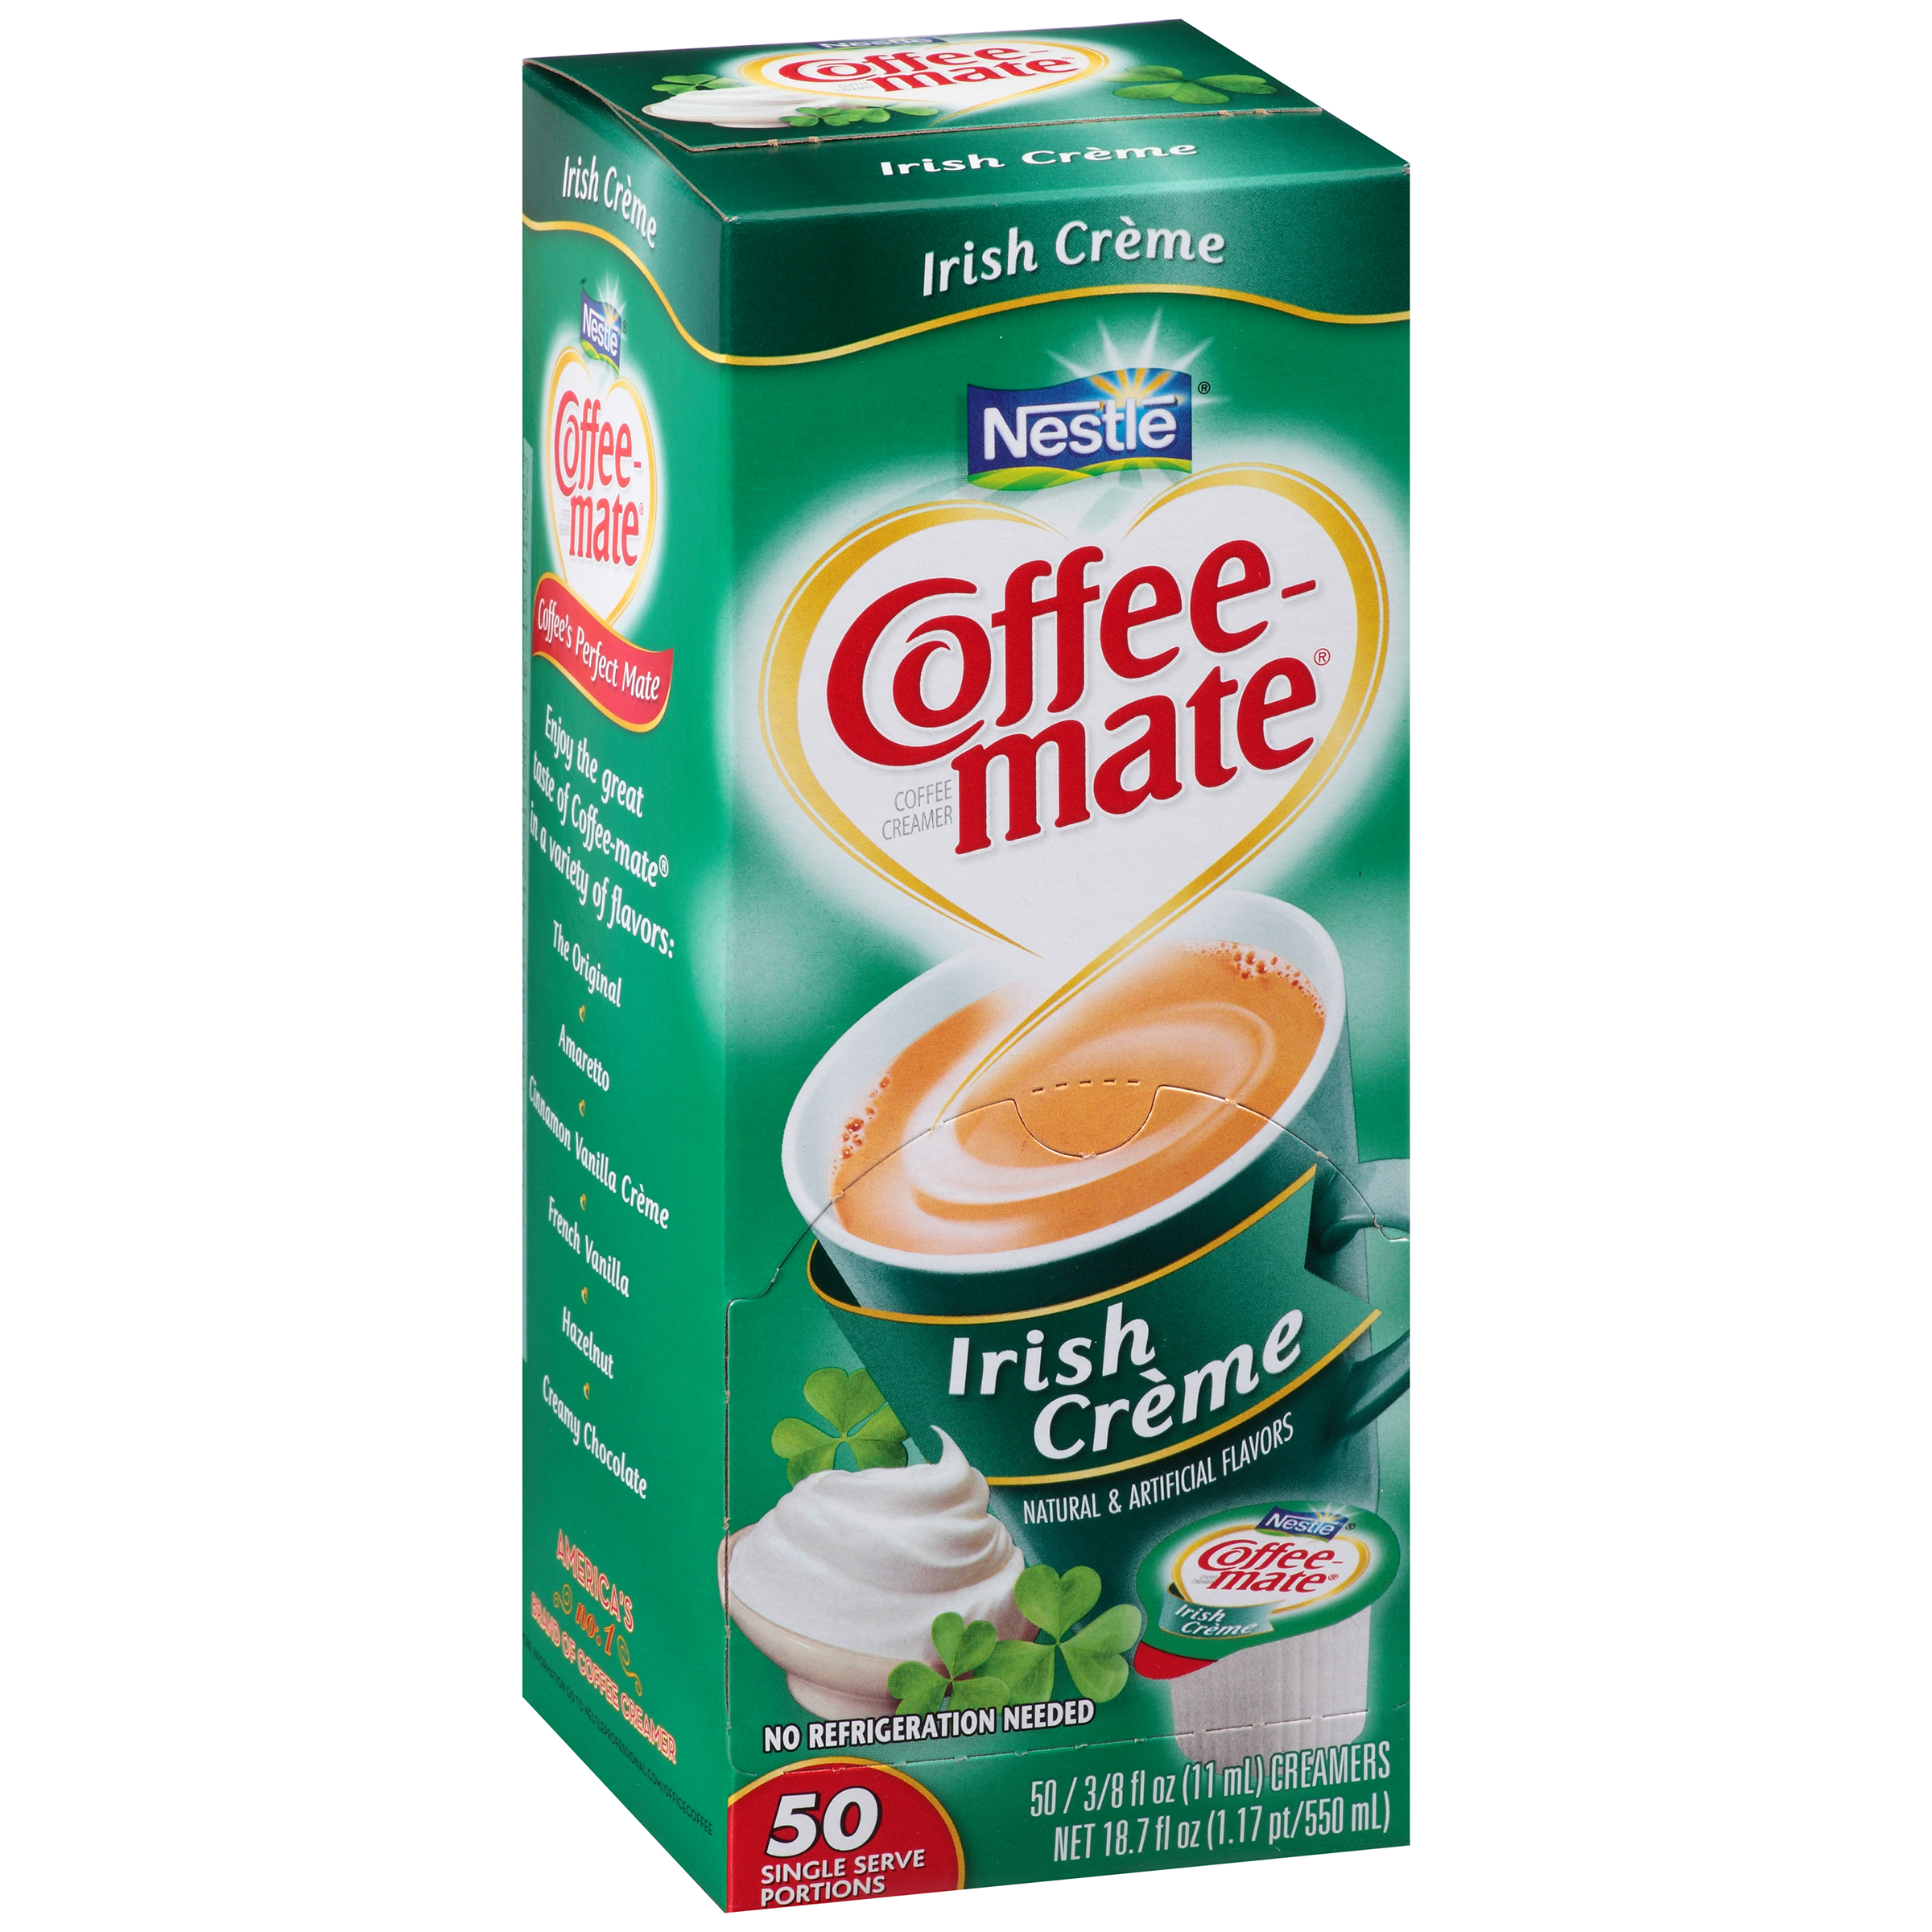 Nestl�� Coffee-mate Irish Creme Coffee Creamer 50-0.375 fl. oz. Tubs